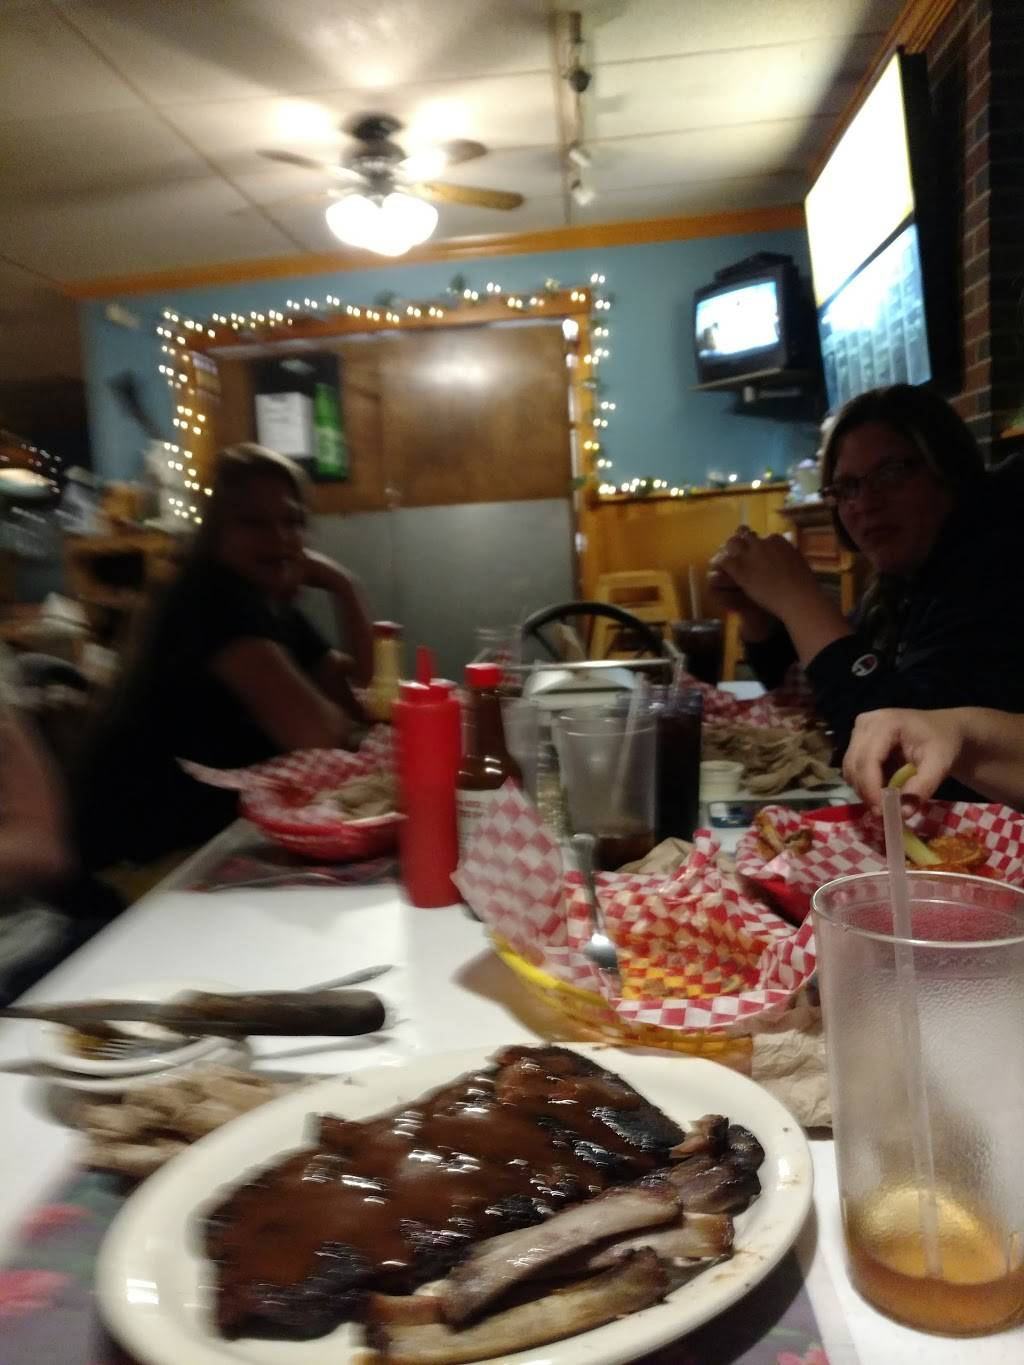 Uncle Bucks BBQ   restaurant   361 W Main St, Plymouth, PA 18651, USA   5707795950 OR +1 570-779-5950